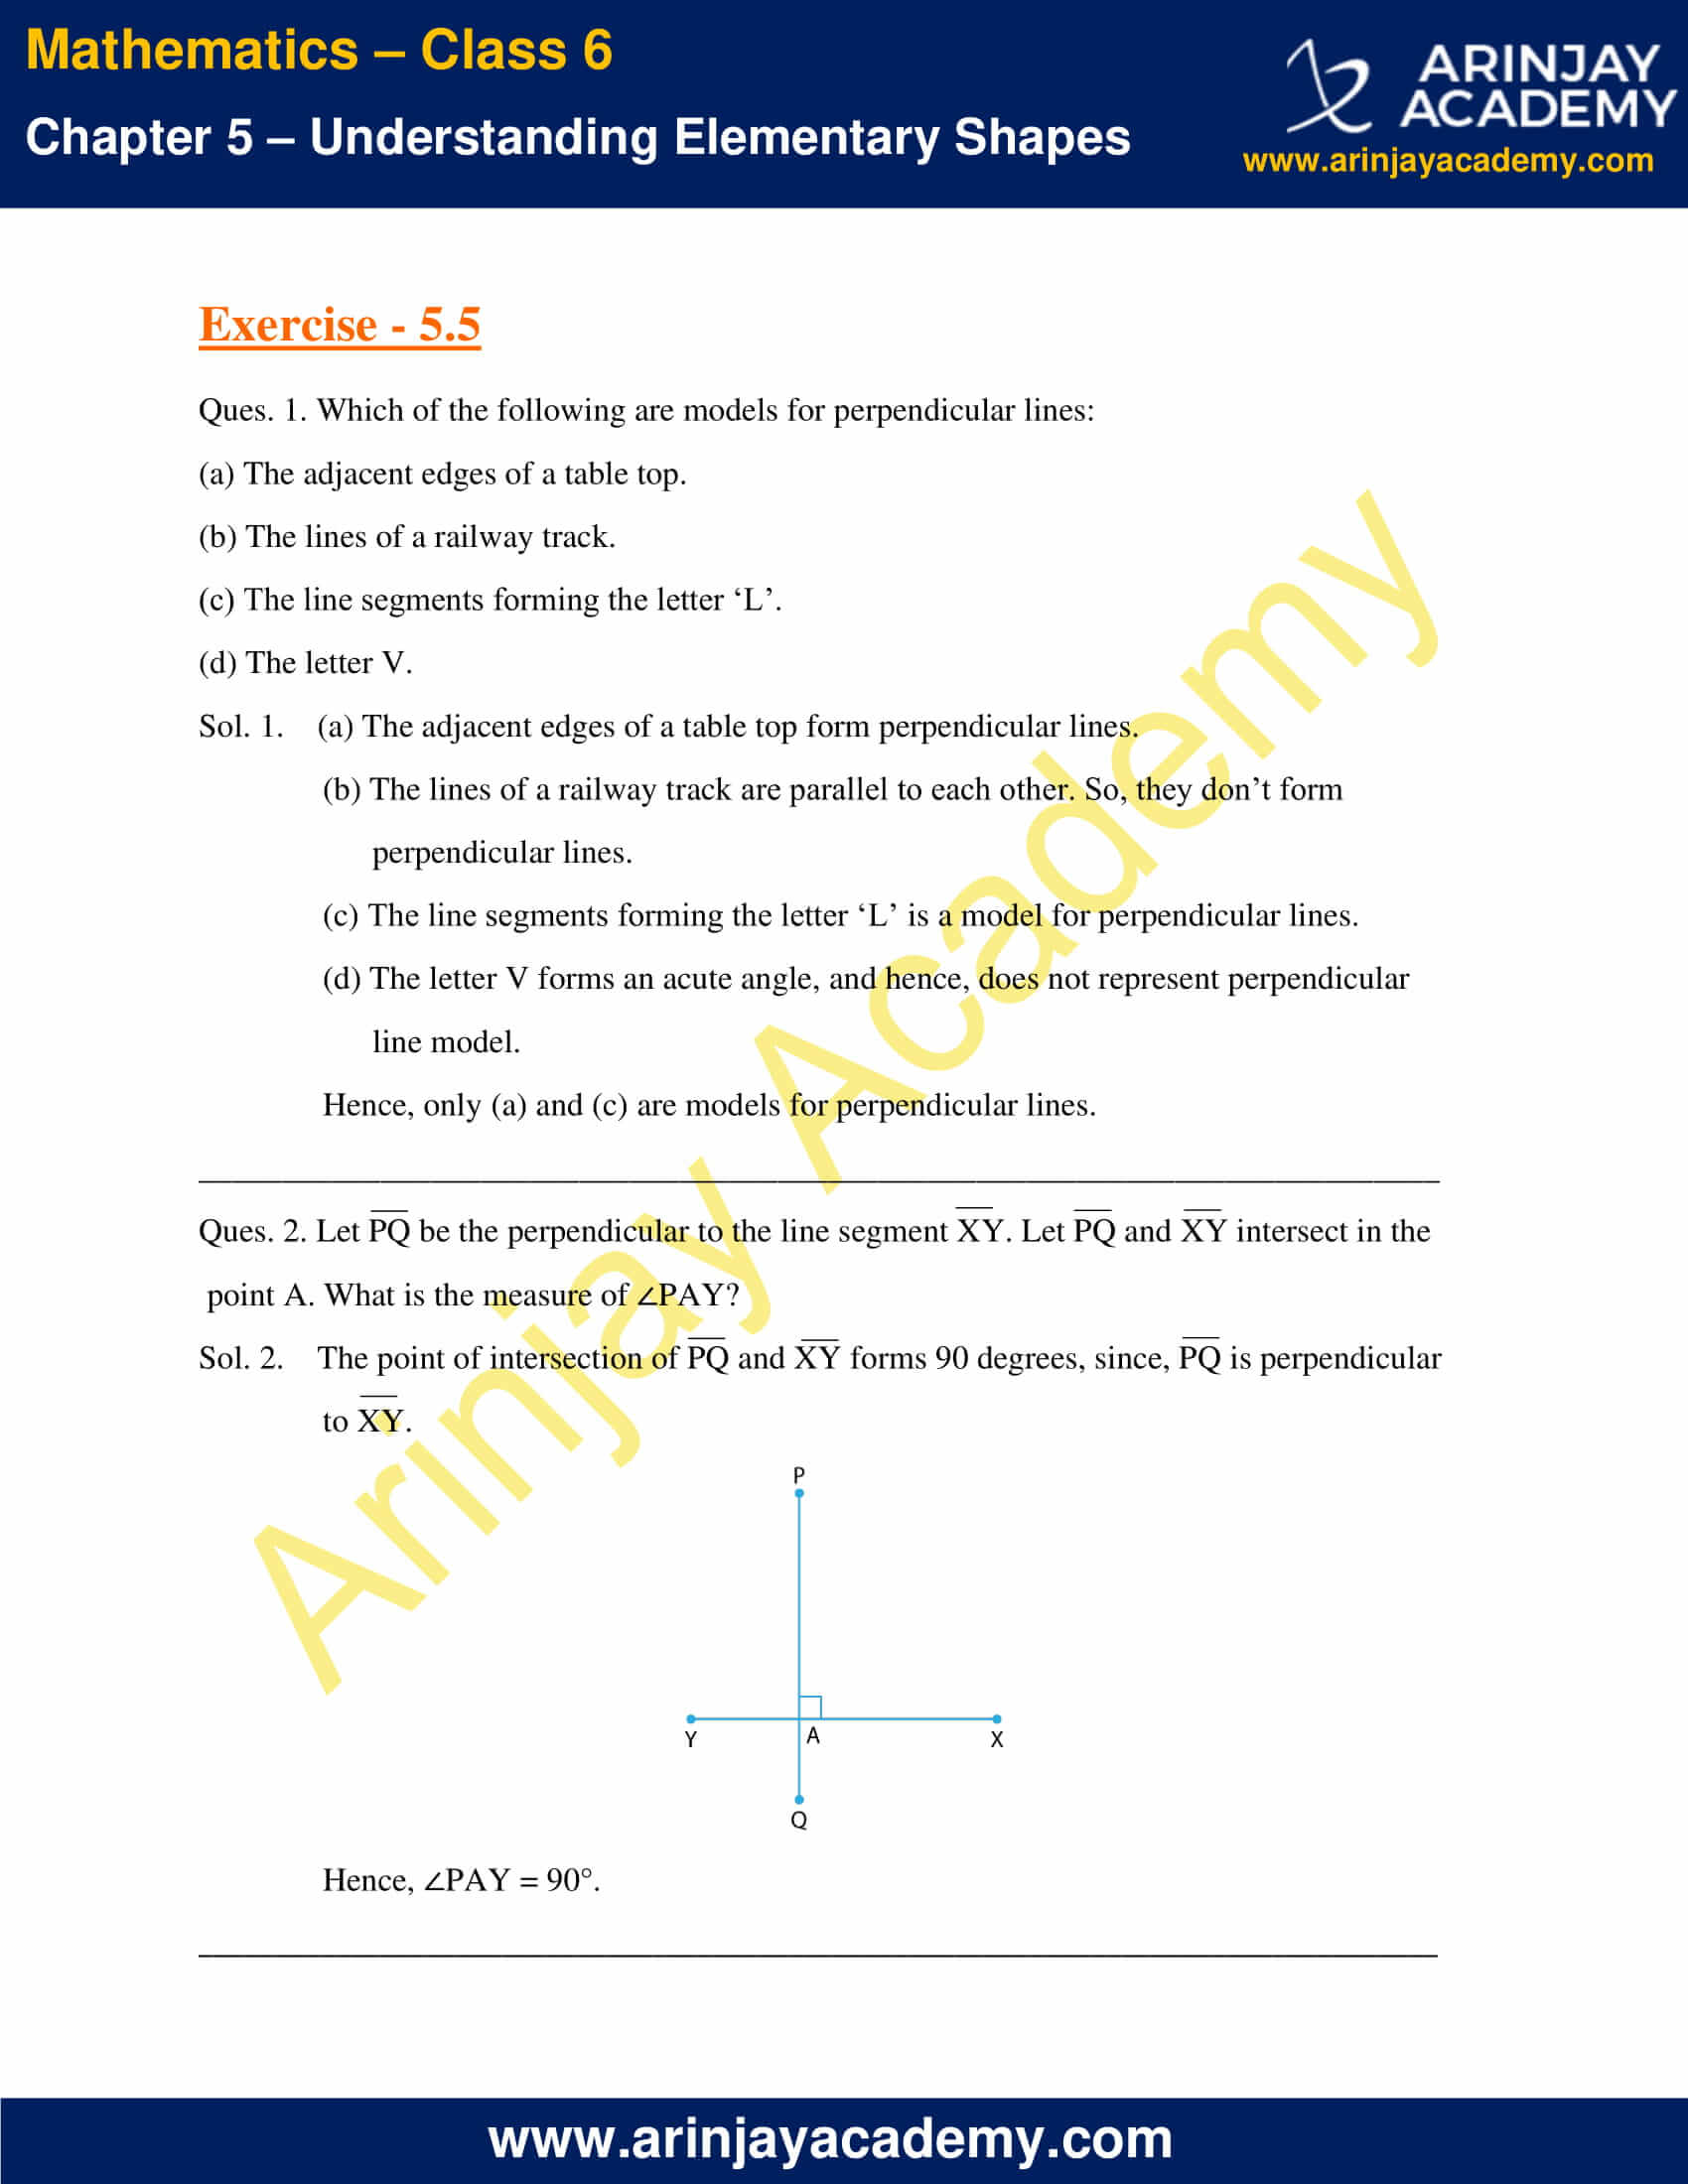 NCERT Solutions for Class 6 Maths Chapter 5 Exercise 5.5 image 1